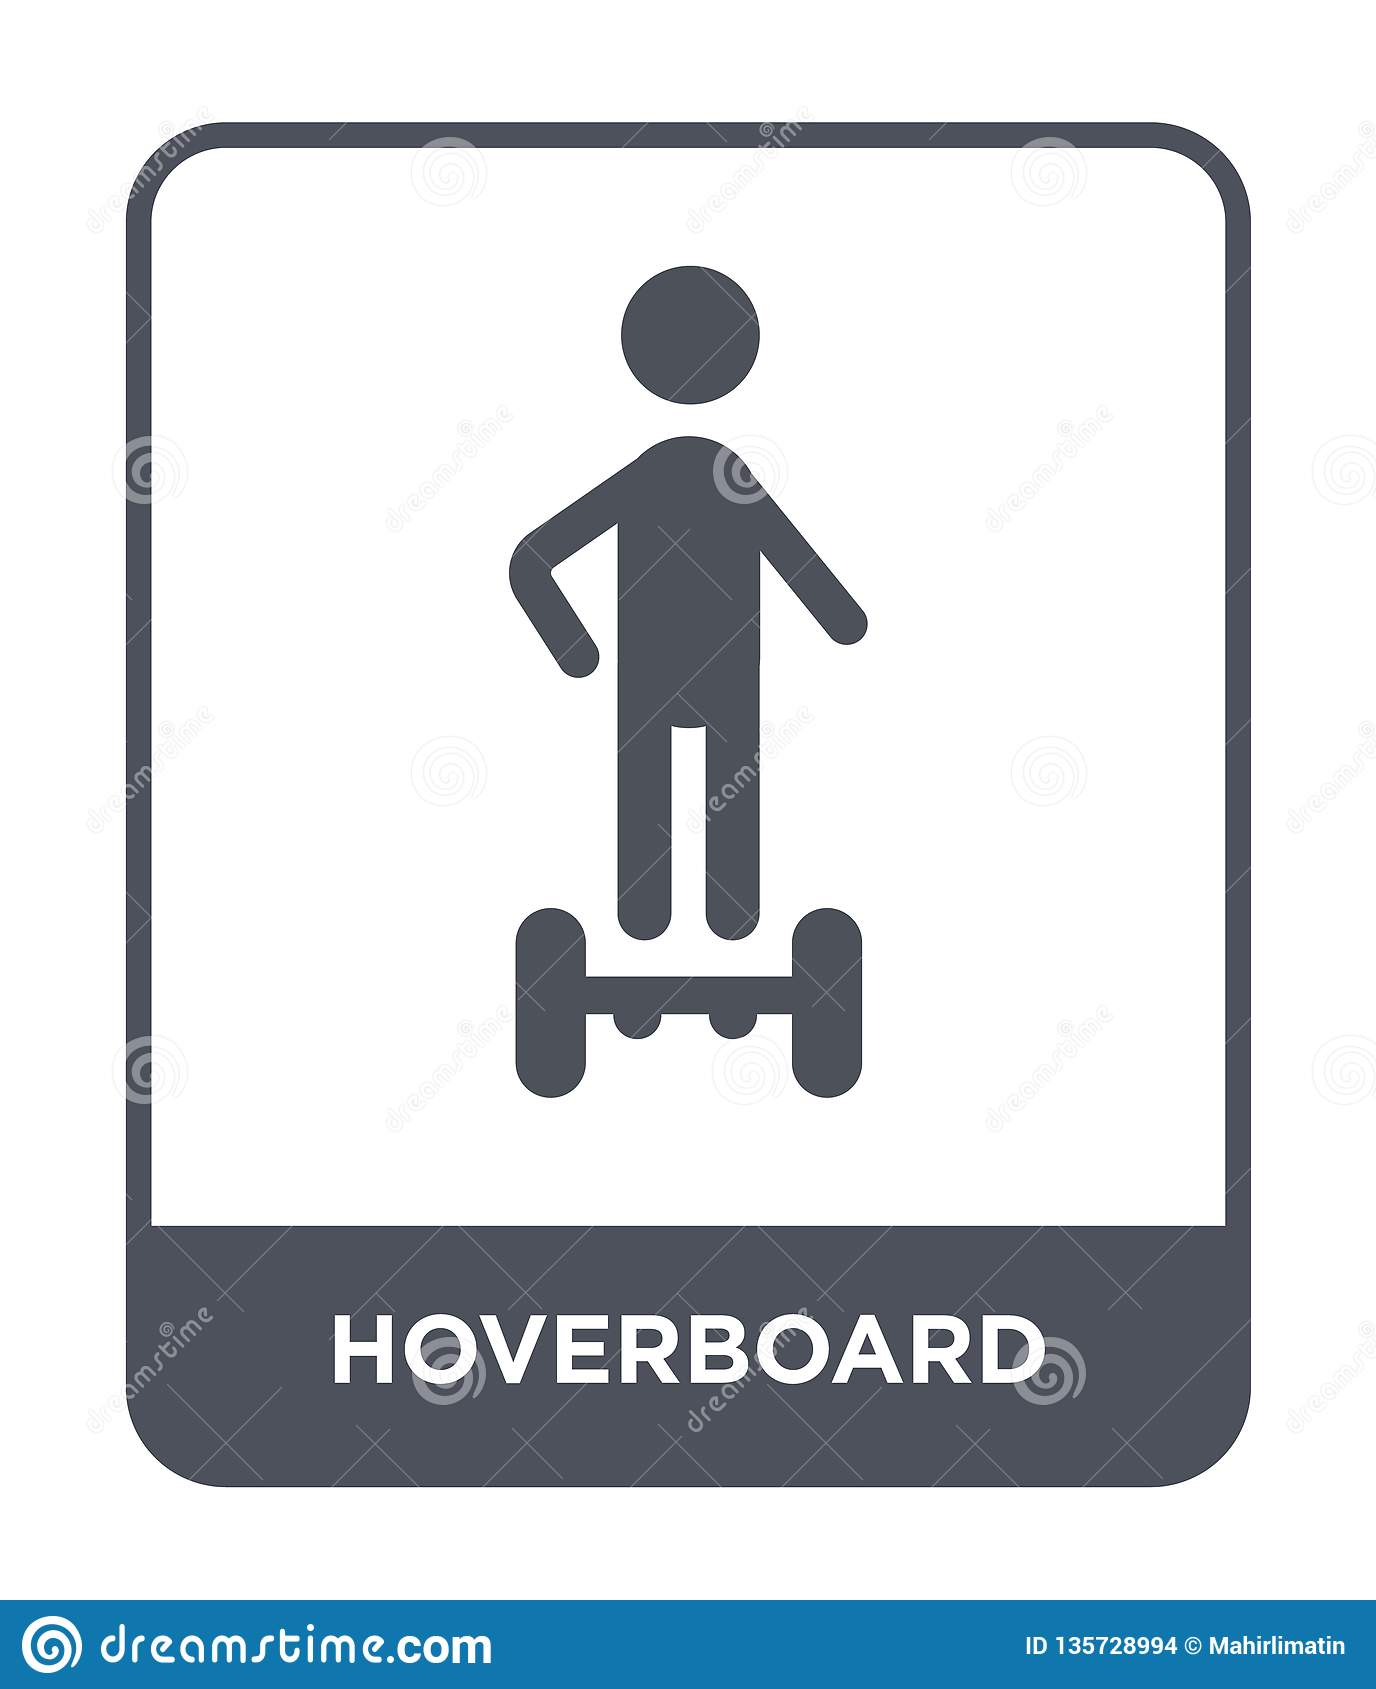 hoverboard icon in trendy design style. hoverboard icon isolated on white background. hoverboard vector icon simple and modern